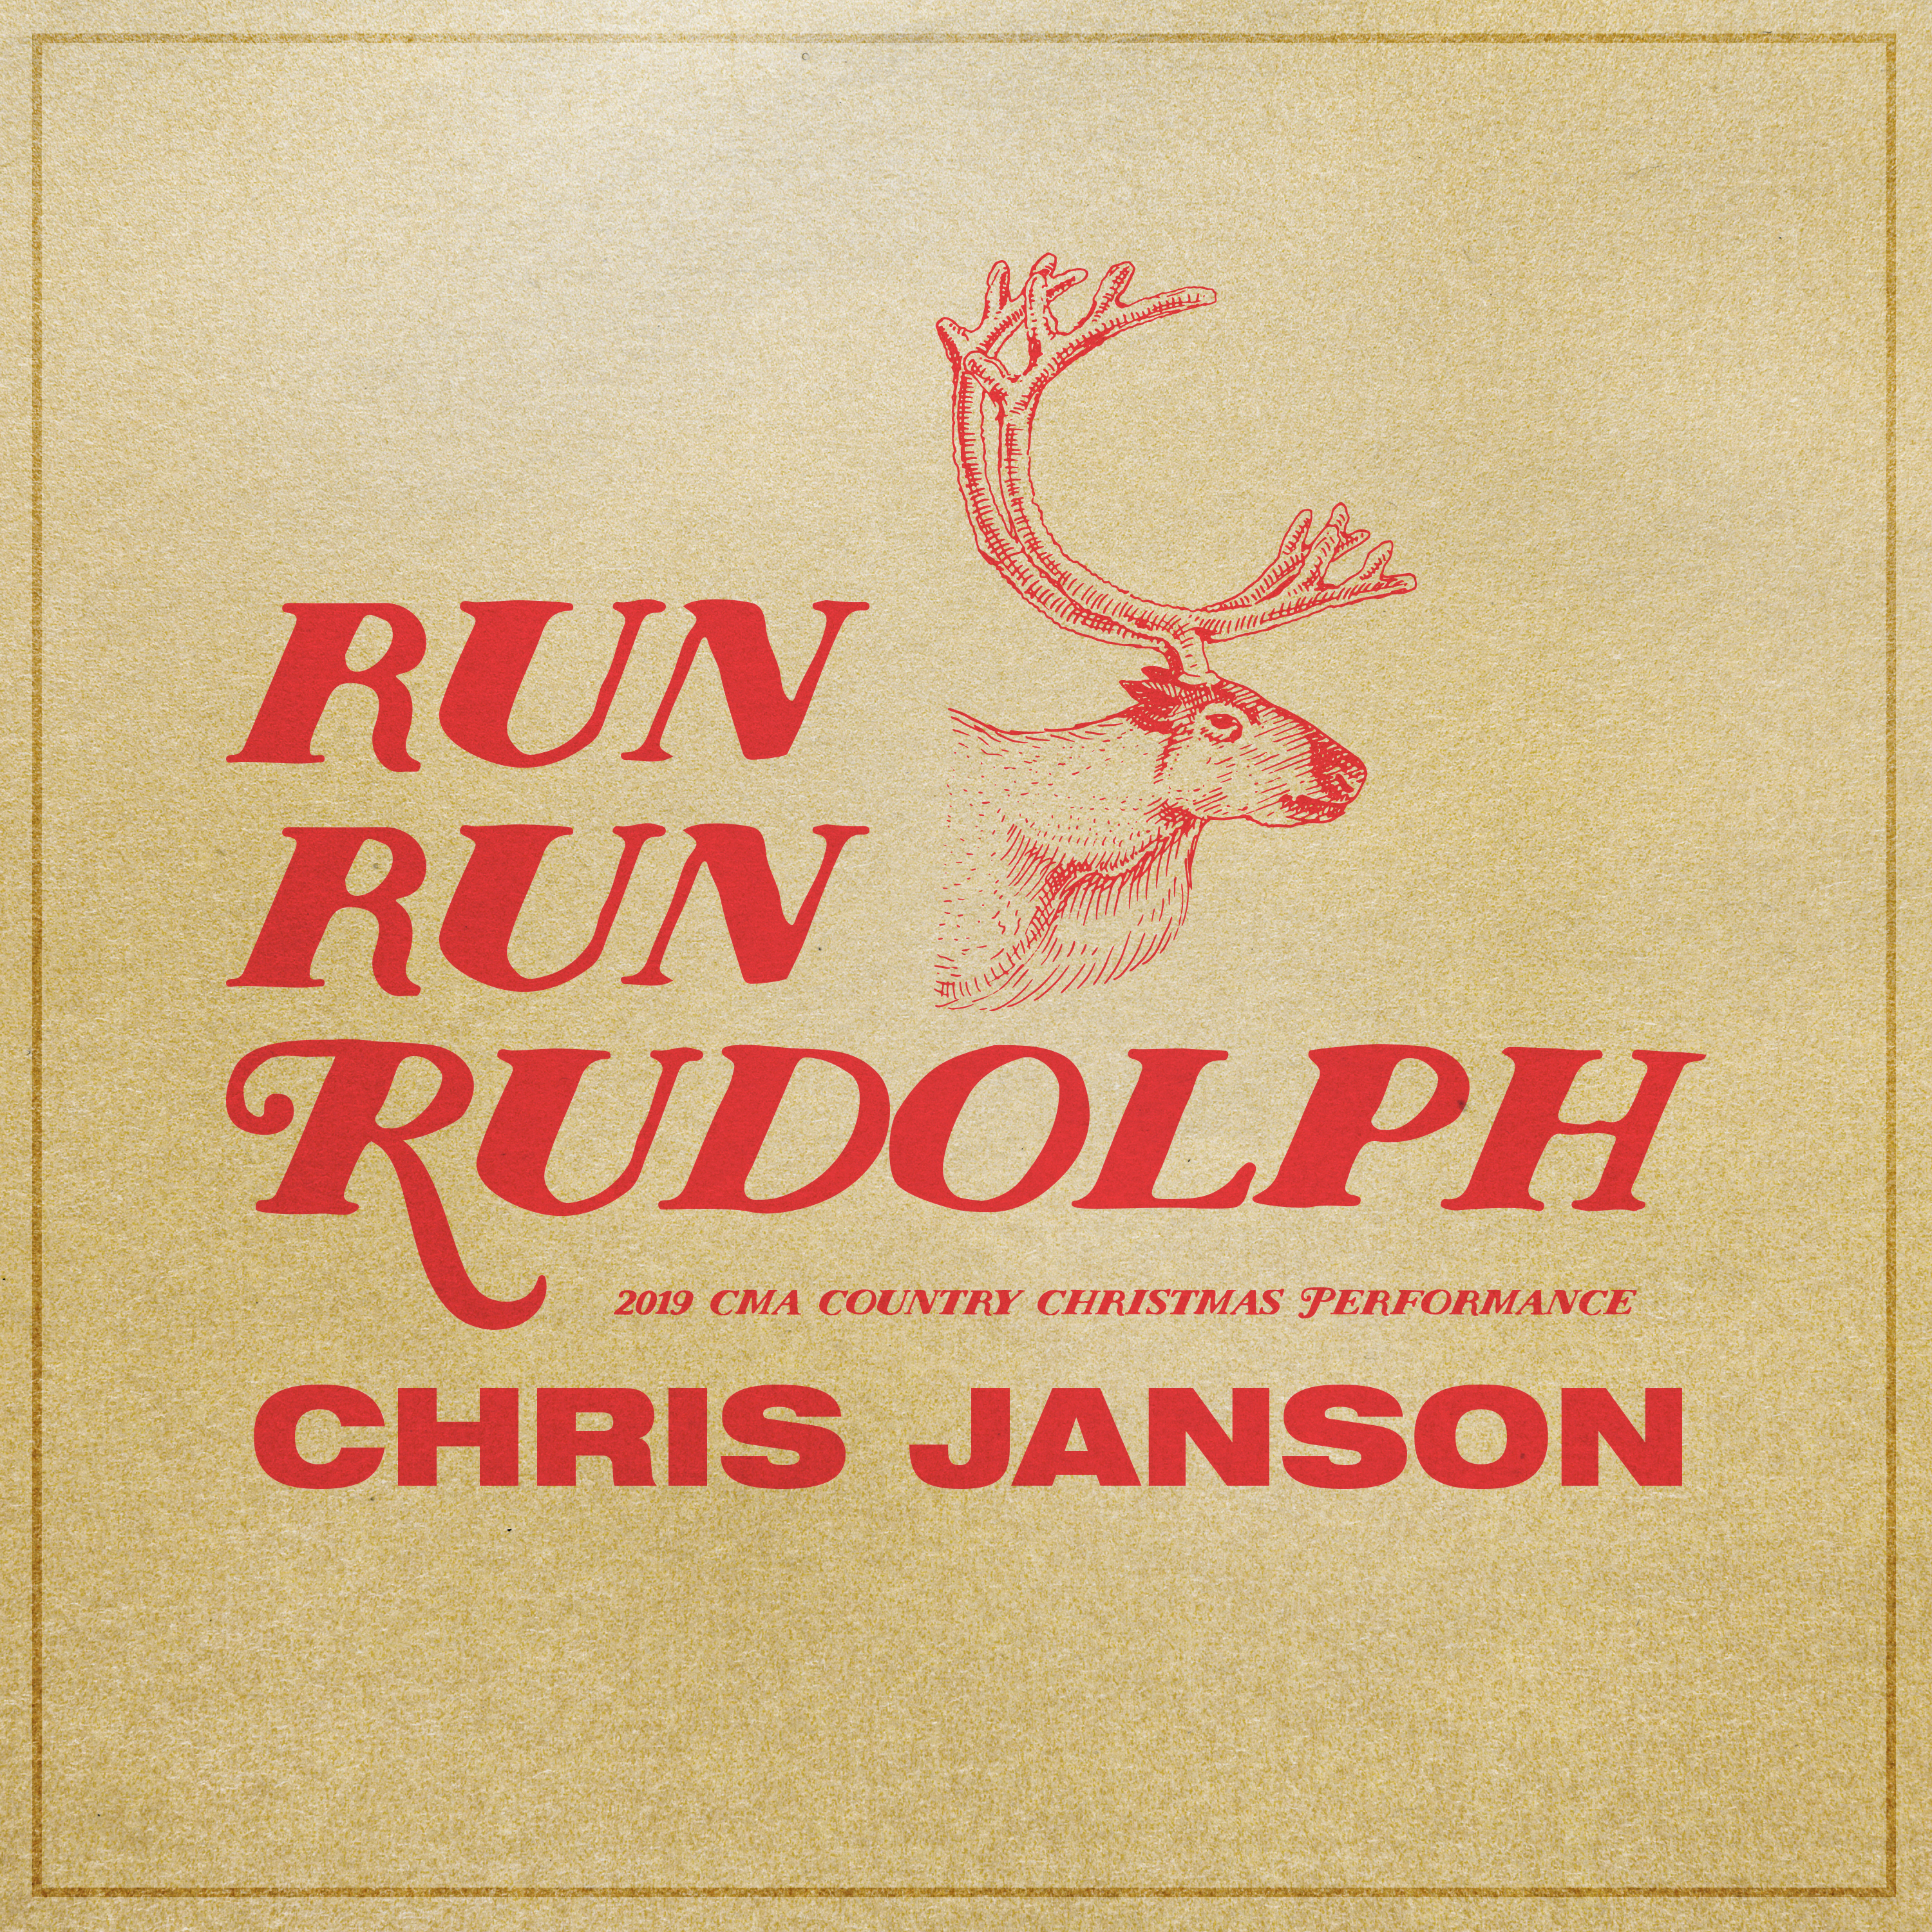 Chris Janson - Run Run Rudolph